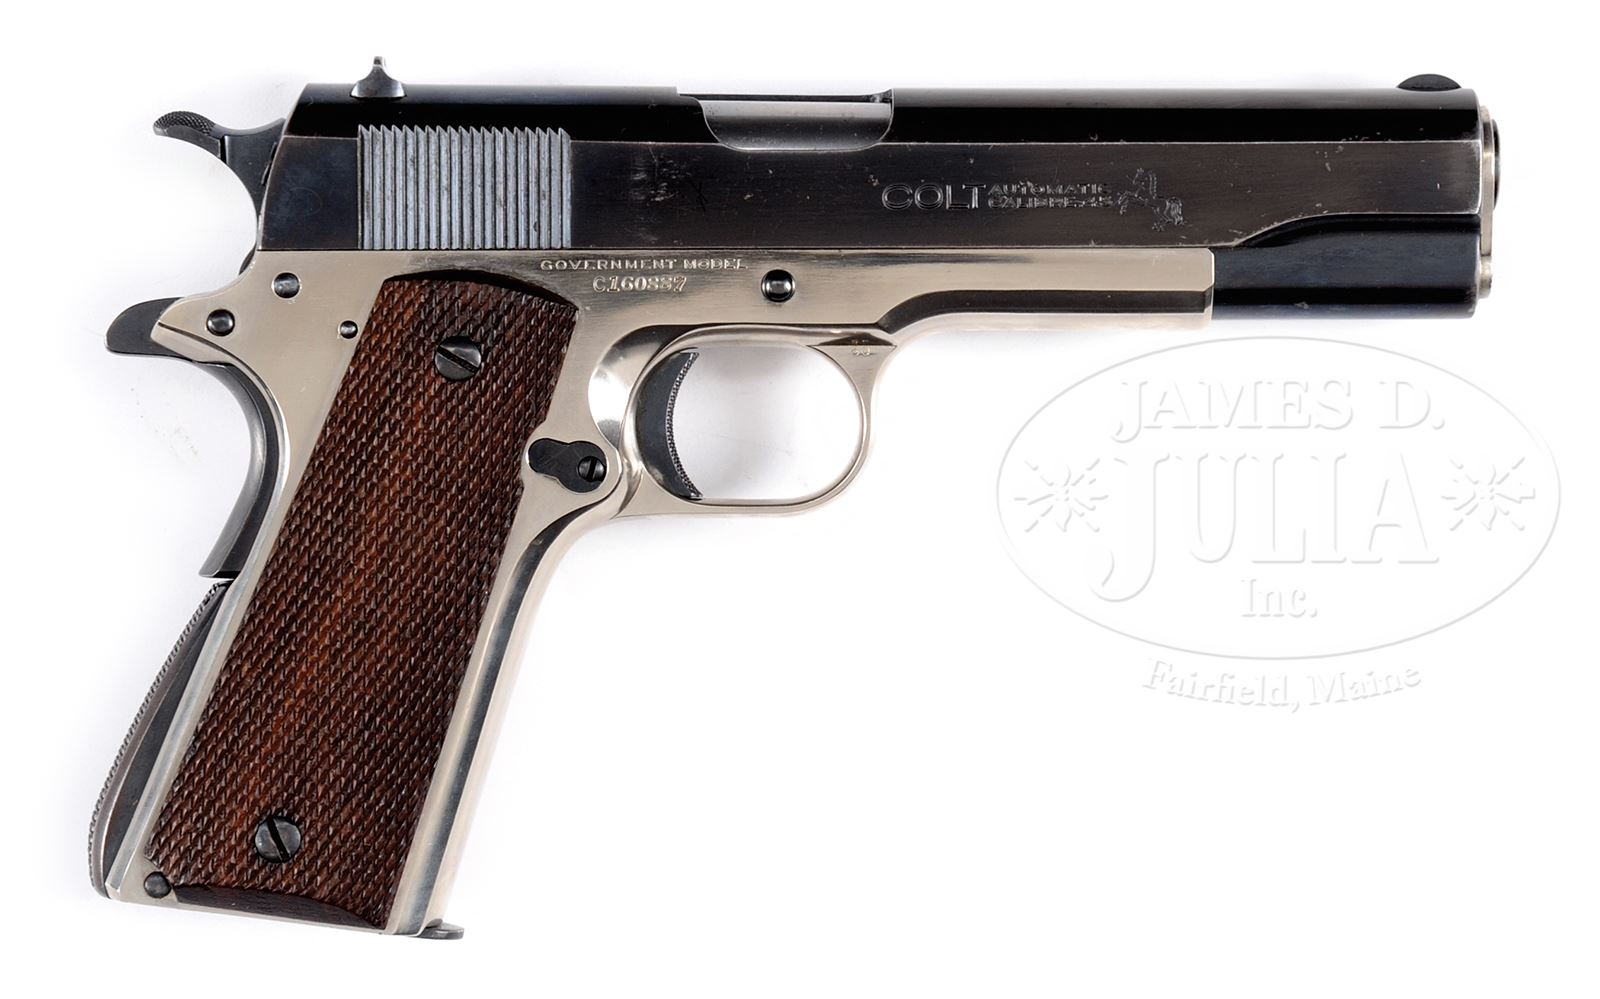 UNIQUE COLT 1911-A1 PRE-NATIONAL MATCH GOVERNMENT MODEL PISTOL WITH